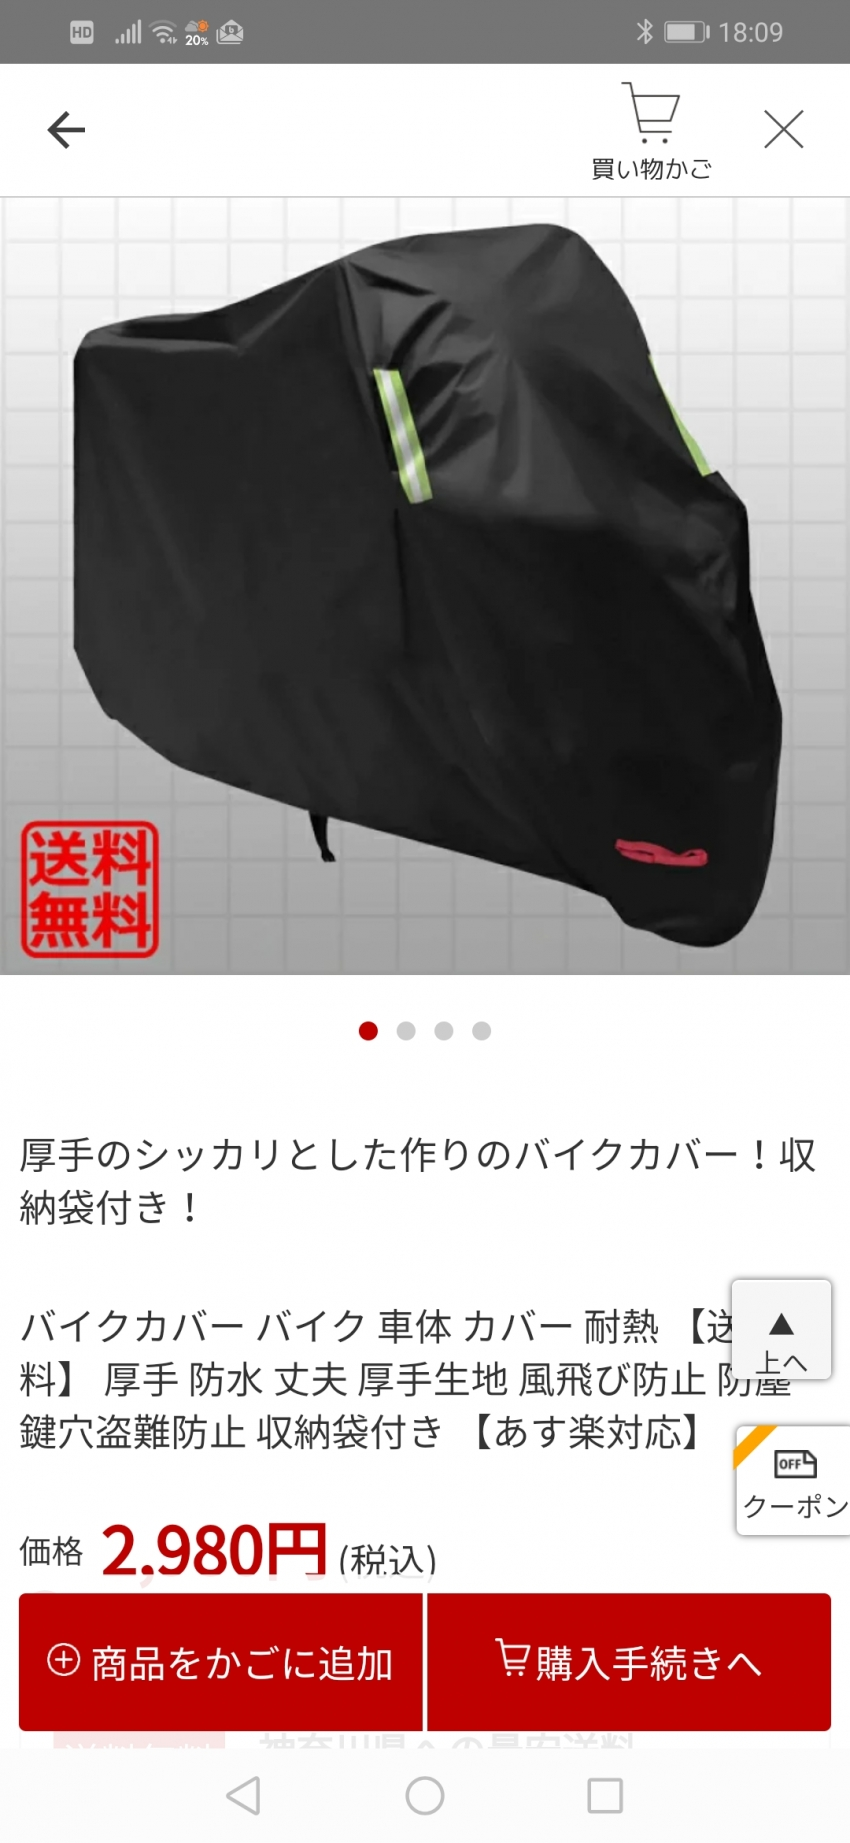 Screenshot_20190818_180922_jp.co.rakuten.android.jpg